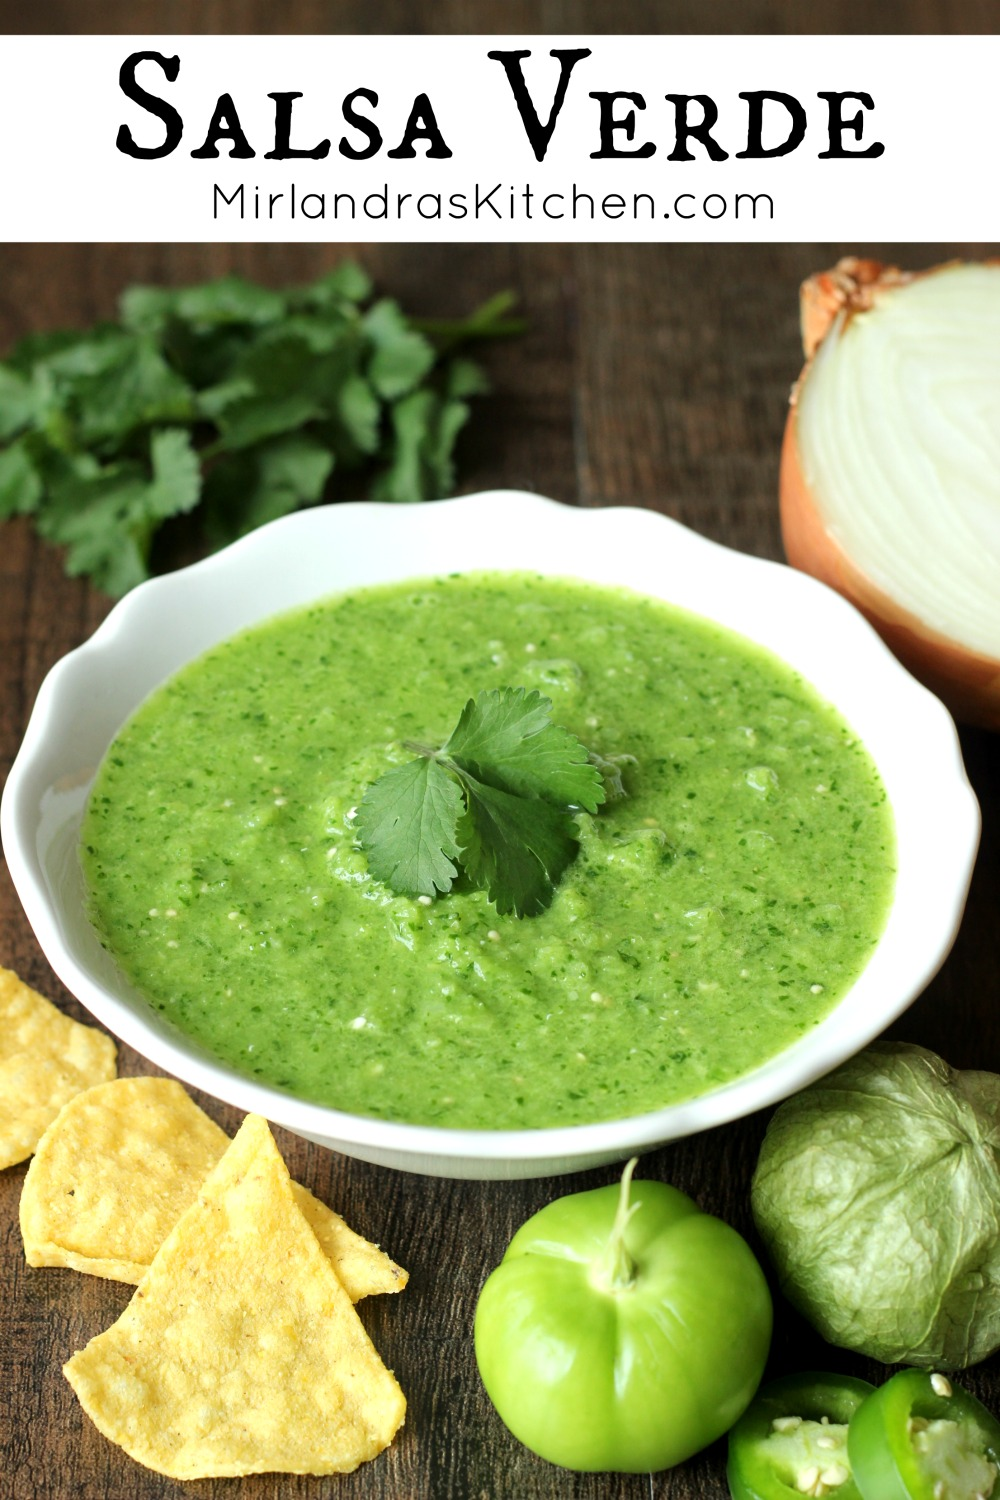 Salsa Verde is the perfect complement to all your favorite Mexican dishes. This bright, flavorful salsa is great with chips, quesadillas and even eggs.